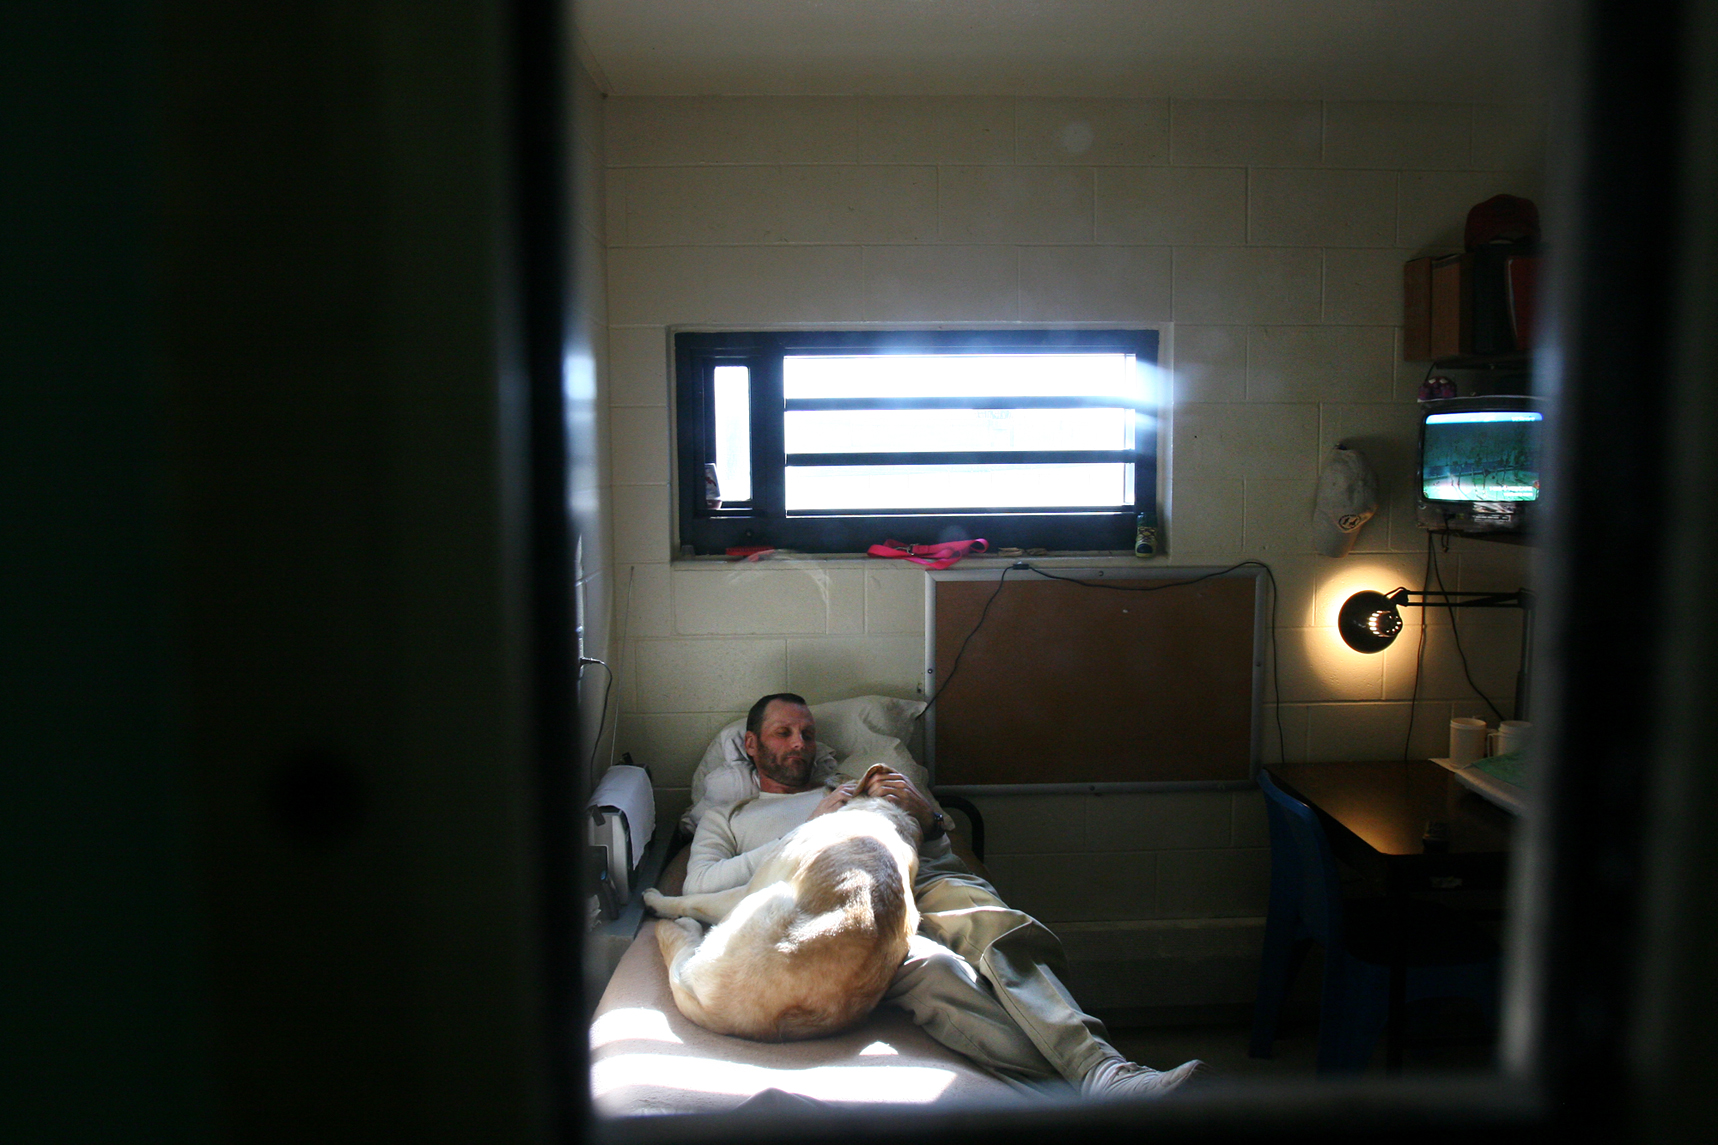 Earl Russell, 43, lays with his dog Riba in his single cell during midday in the Nebraska State Penitentiary.He says Riba's unconditional love has helped him cope with his recent medical conditions and denial of parole.